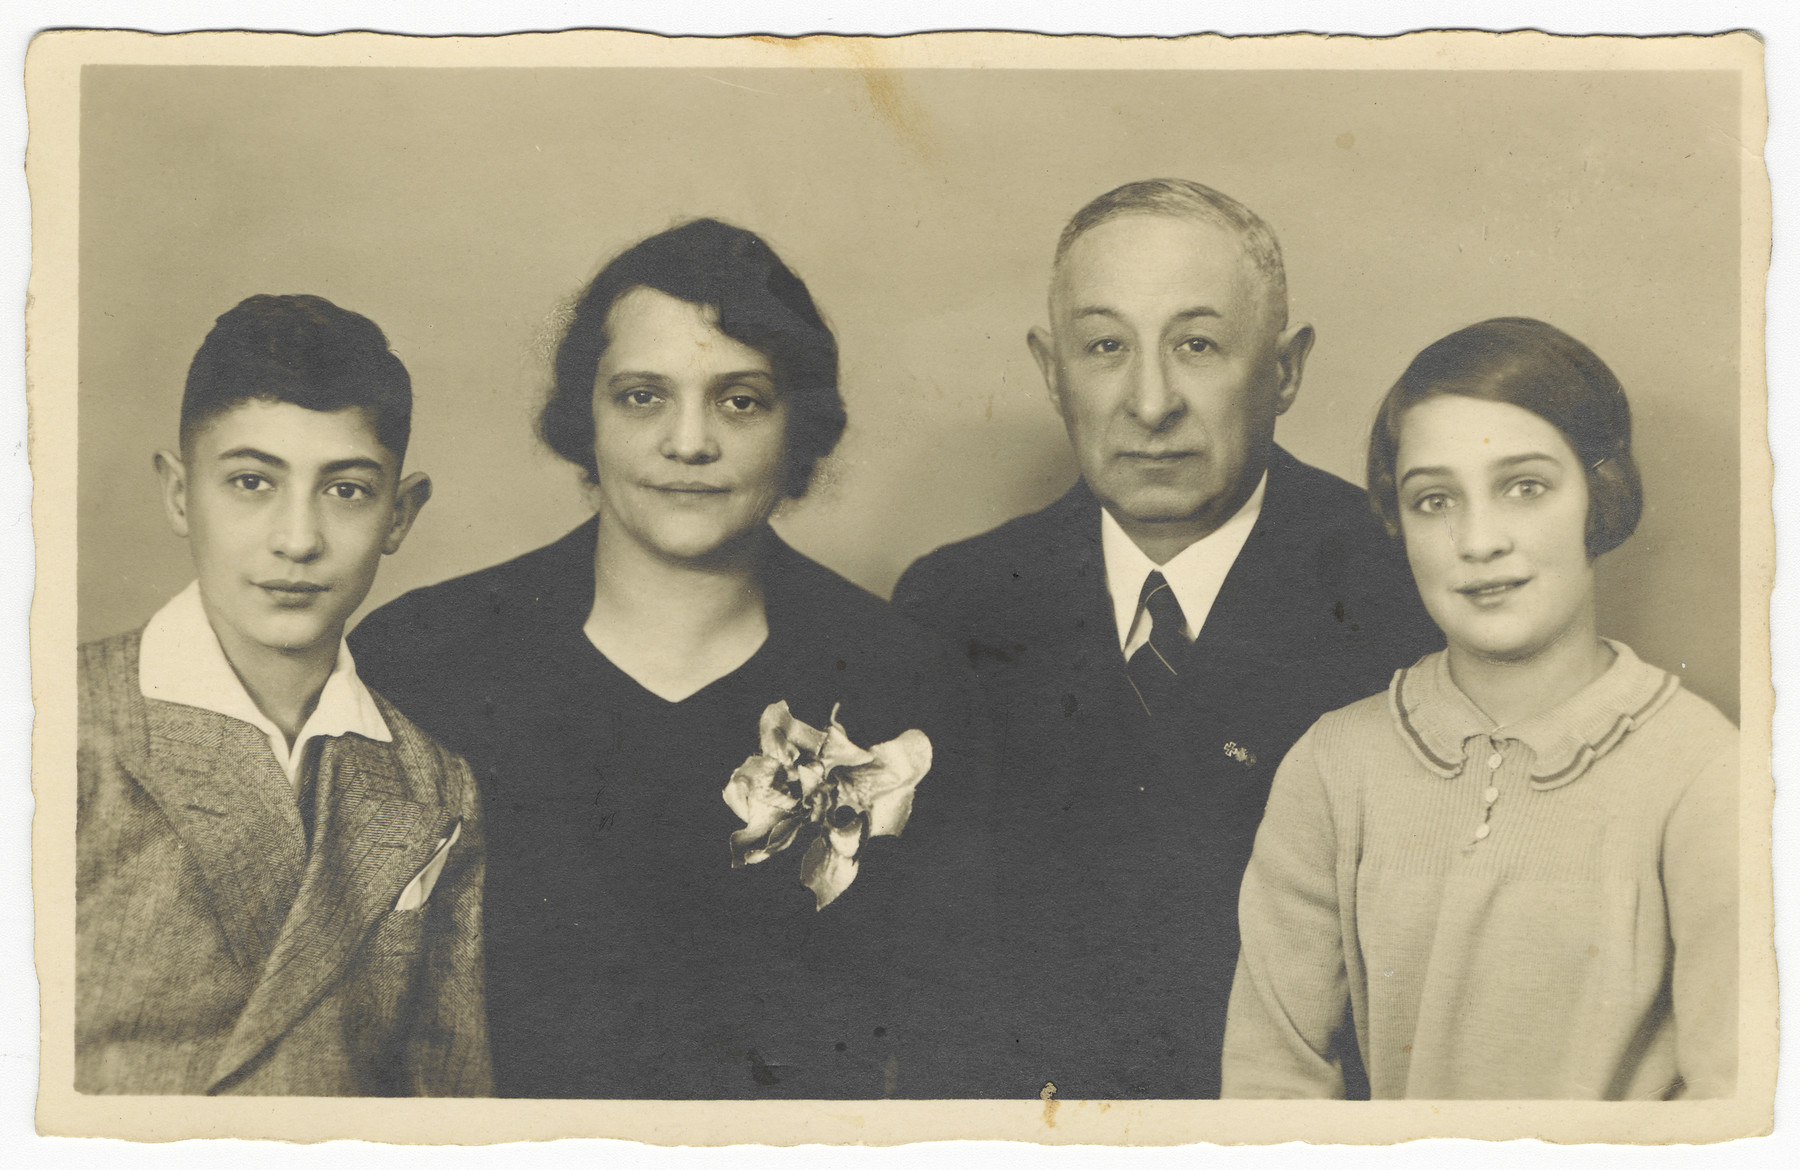 Studio portrait of a German-Jewish family prior to the emigration of the wife and children.  Pictured from left to right are Paul, Rosa, Louis and Henni Breslauer.